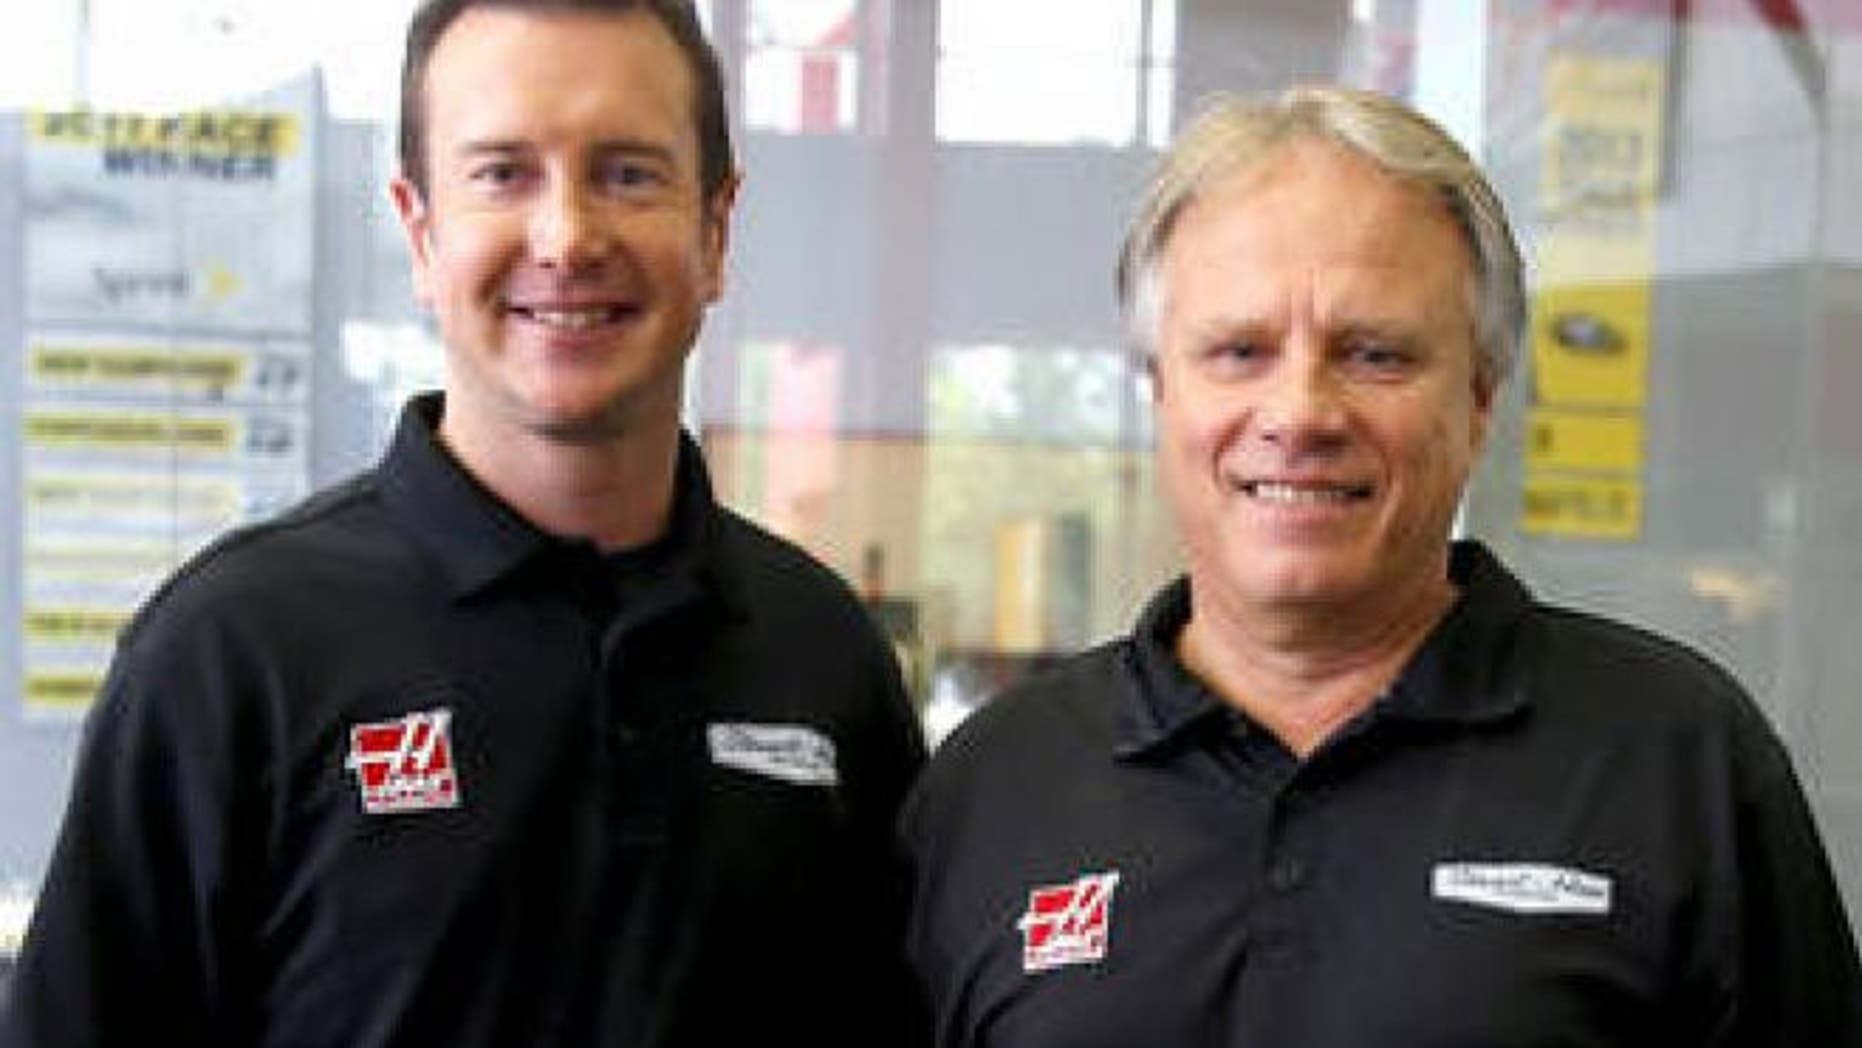 Stewart-Haas driver Kurt Busch (left) with Gene Haas (right).